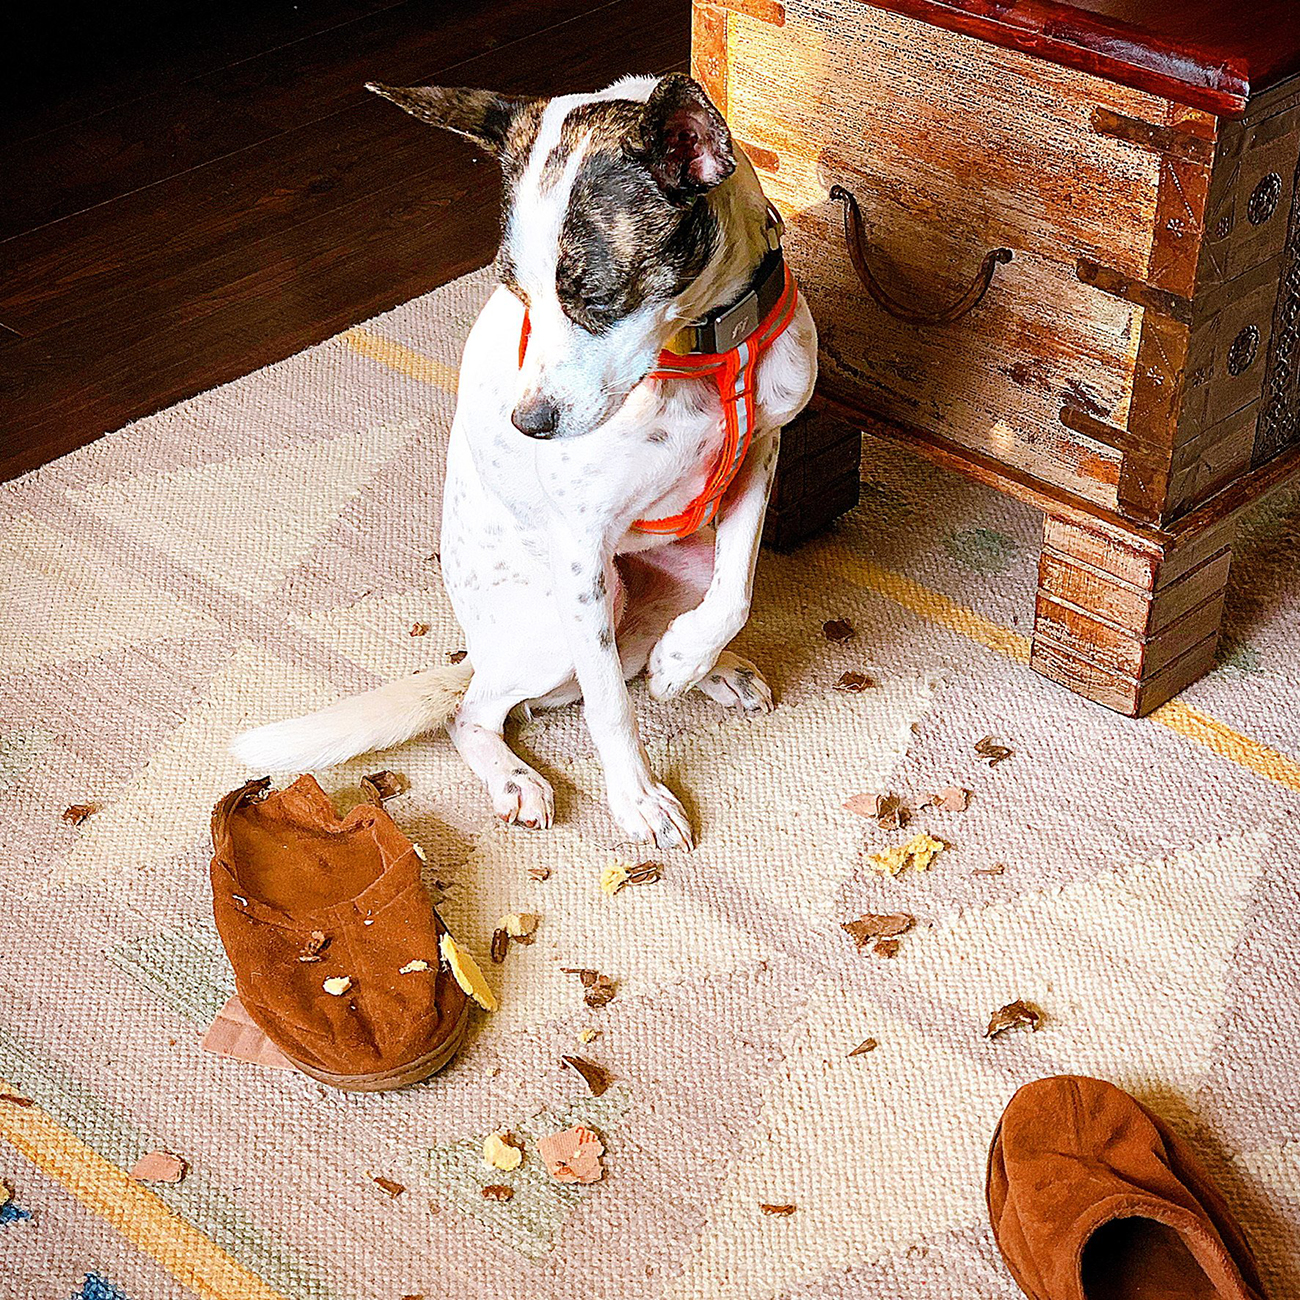 Guilty white and brown dog looks at destroyed slipper